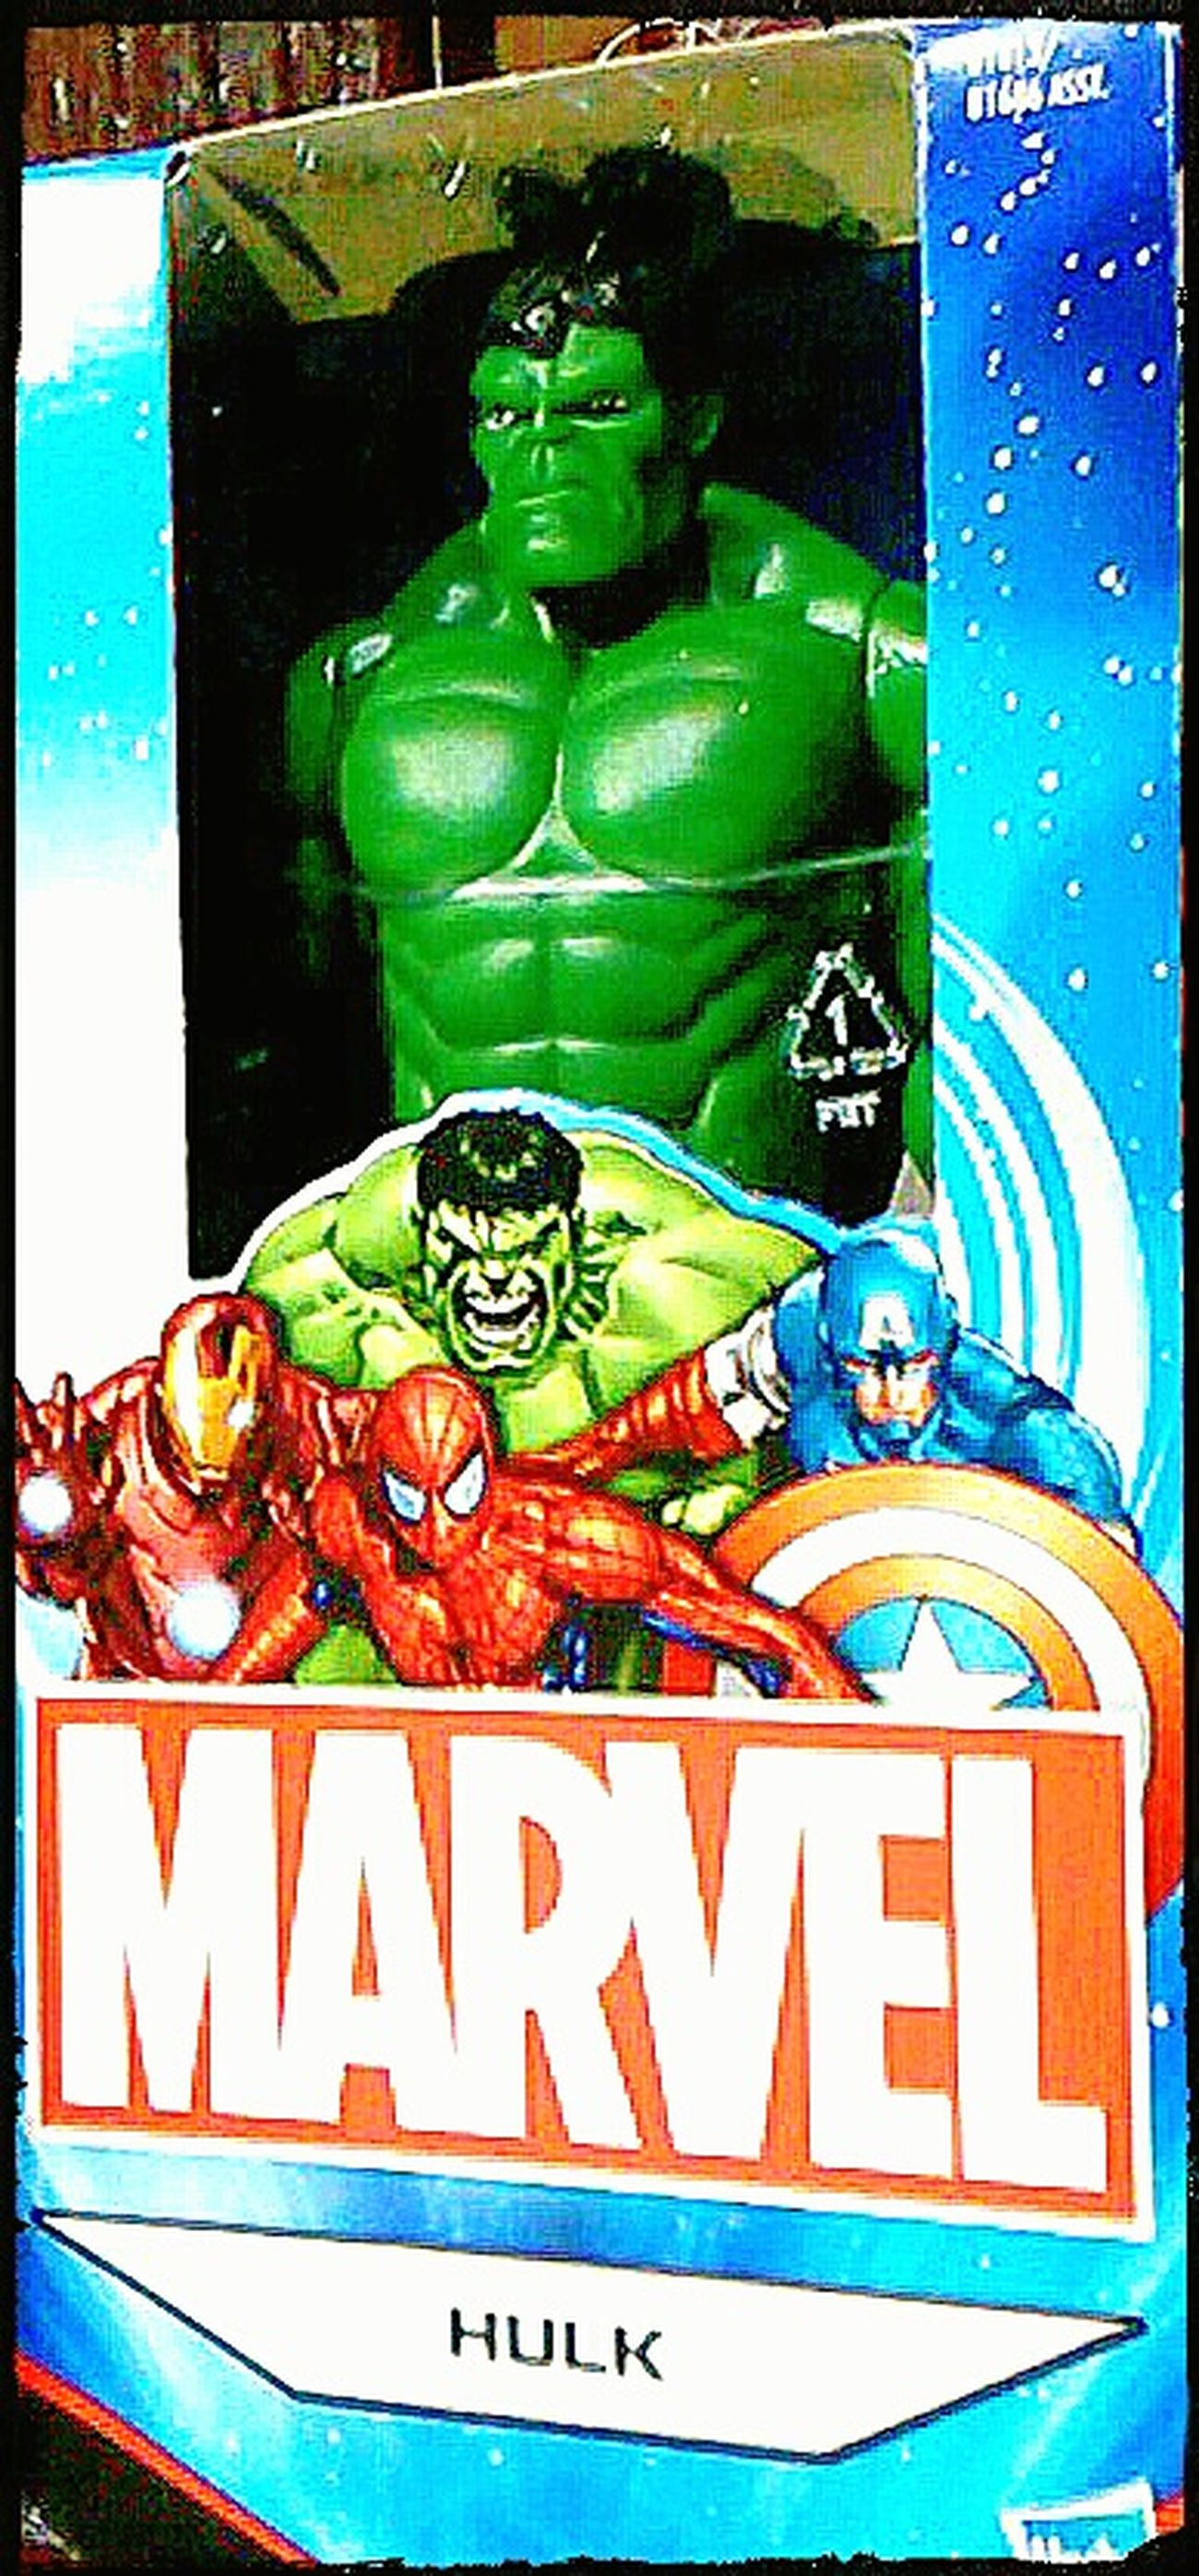 The Hulk Marvelcomics Marvel Comics Super Hero Action Figures Fictional People Action Figurines The Incredible Hulk Comic Heroes Hulk Avengers Thehulk Marvel Theincrediblehulk The Hulk ! The Green Man MarvelHeroes Marvellengends Pulse Rate Rising